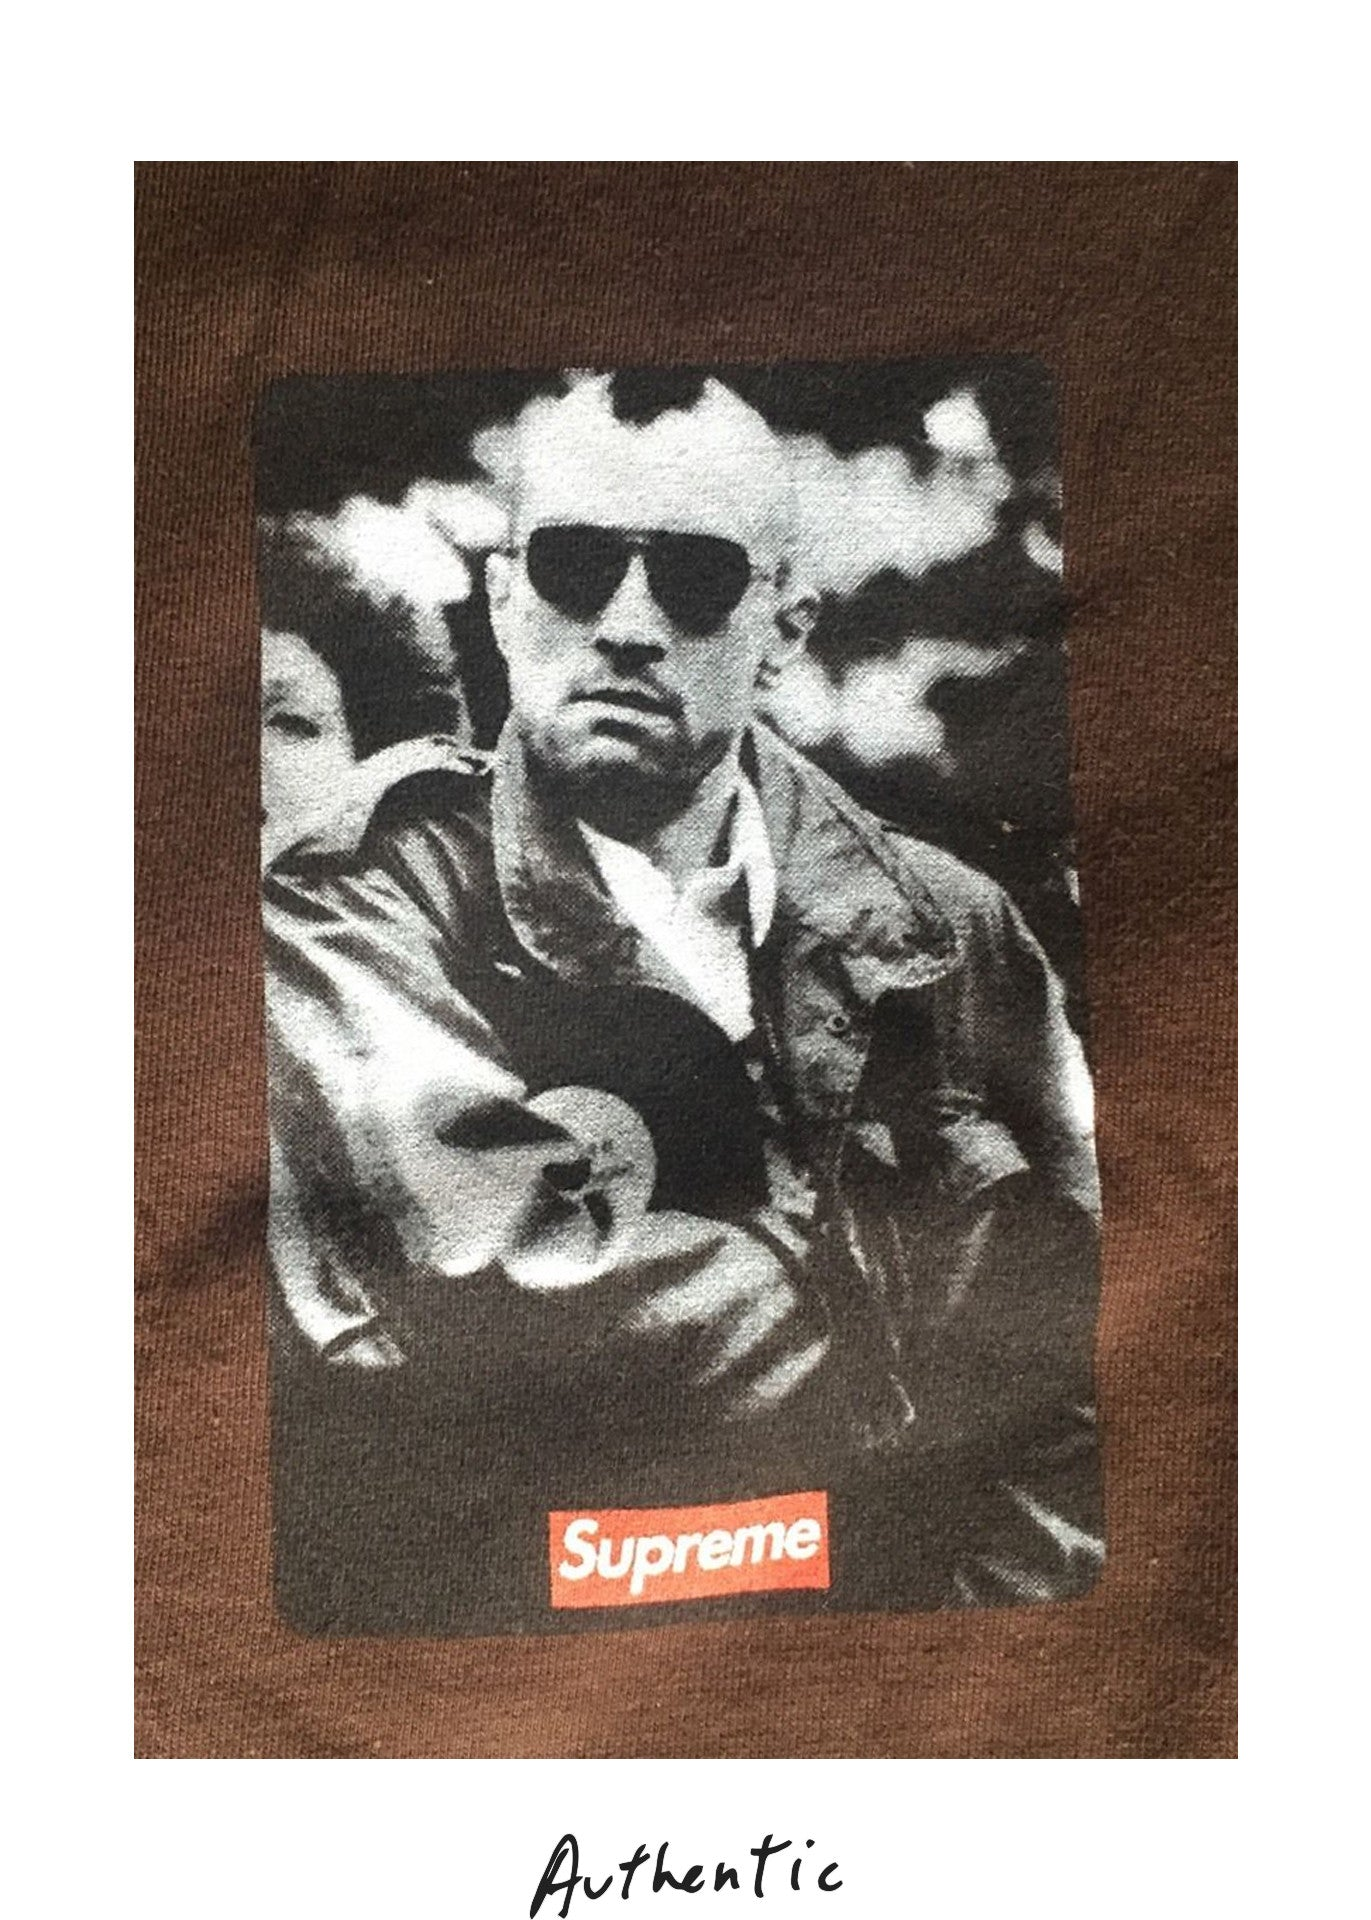 Supreme 20th Anniversary Taxi Driver Tee (S/S 2014)